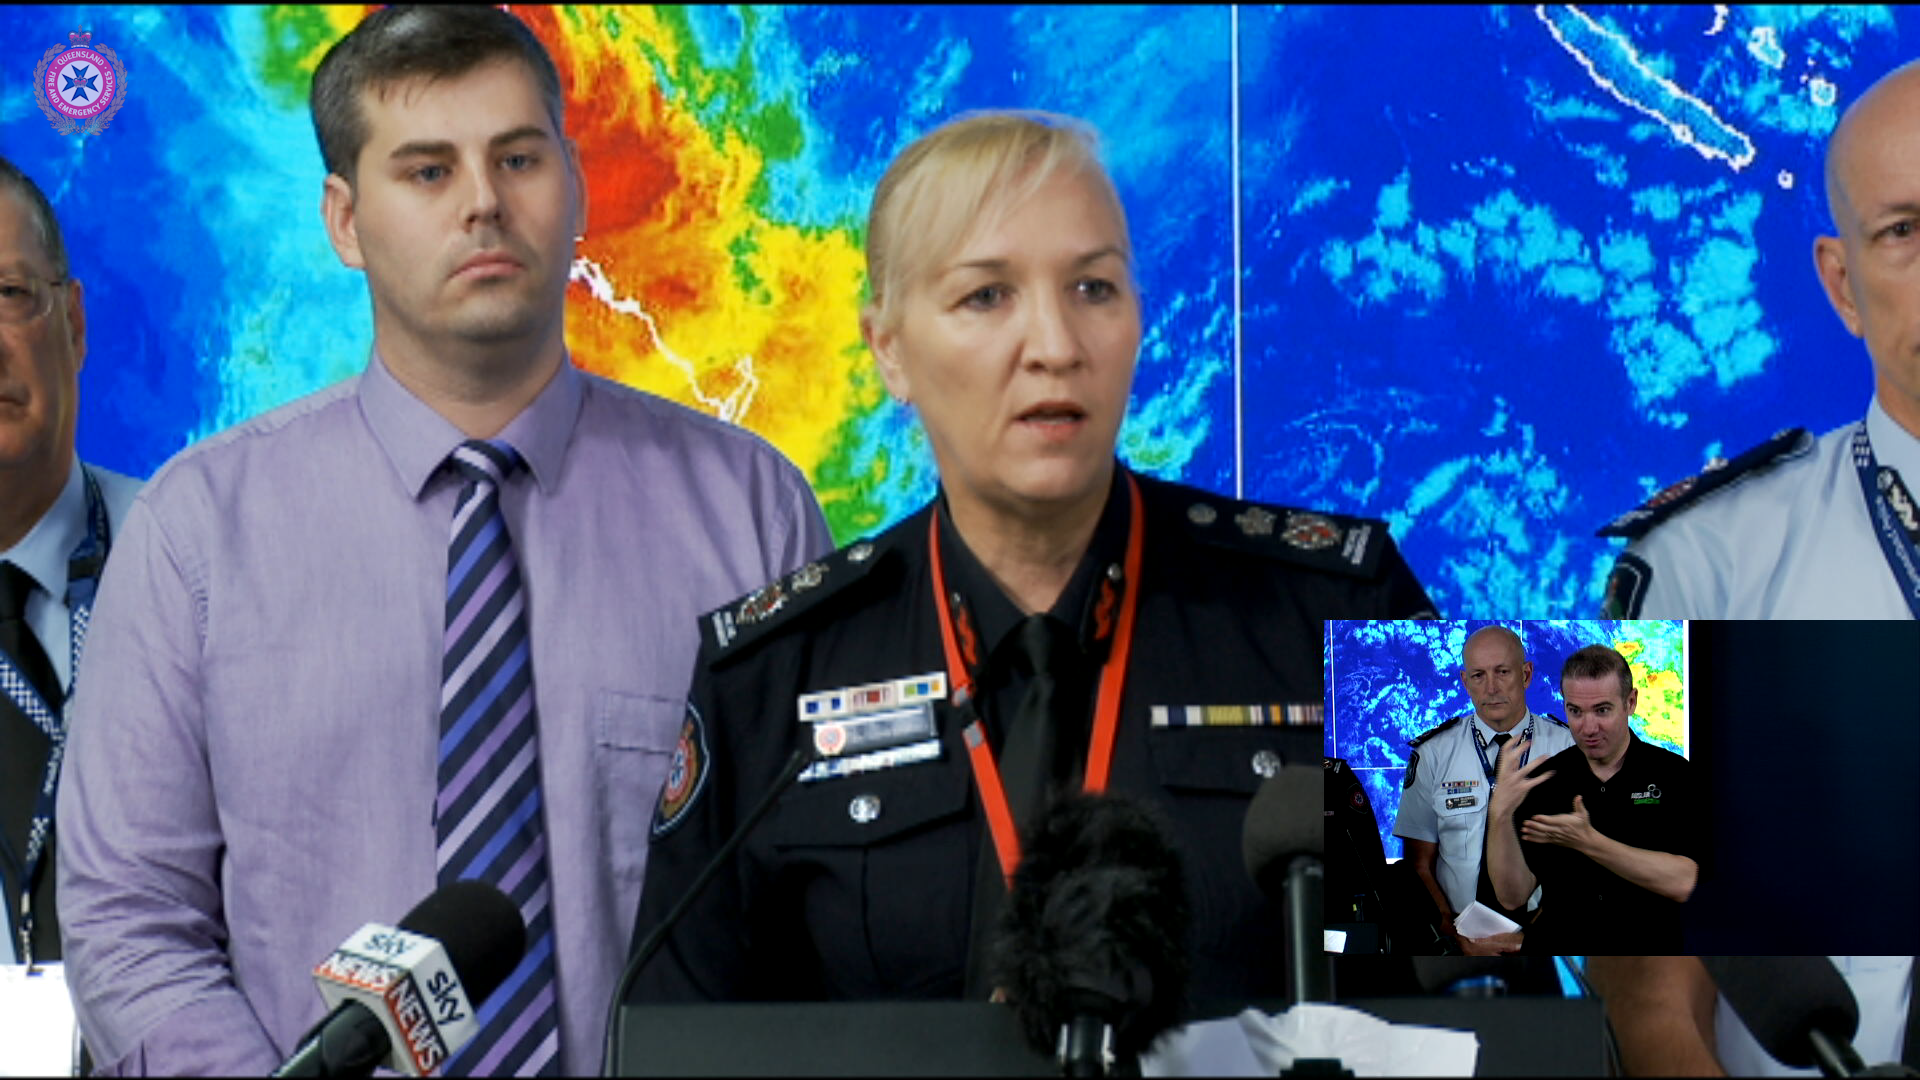 Emergency Services and the Bureau of Meteorology update on severe weather conditions after ex-Cyclone Debbie